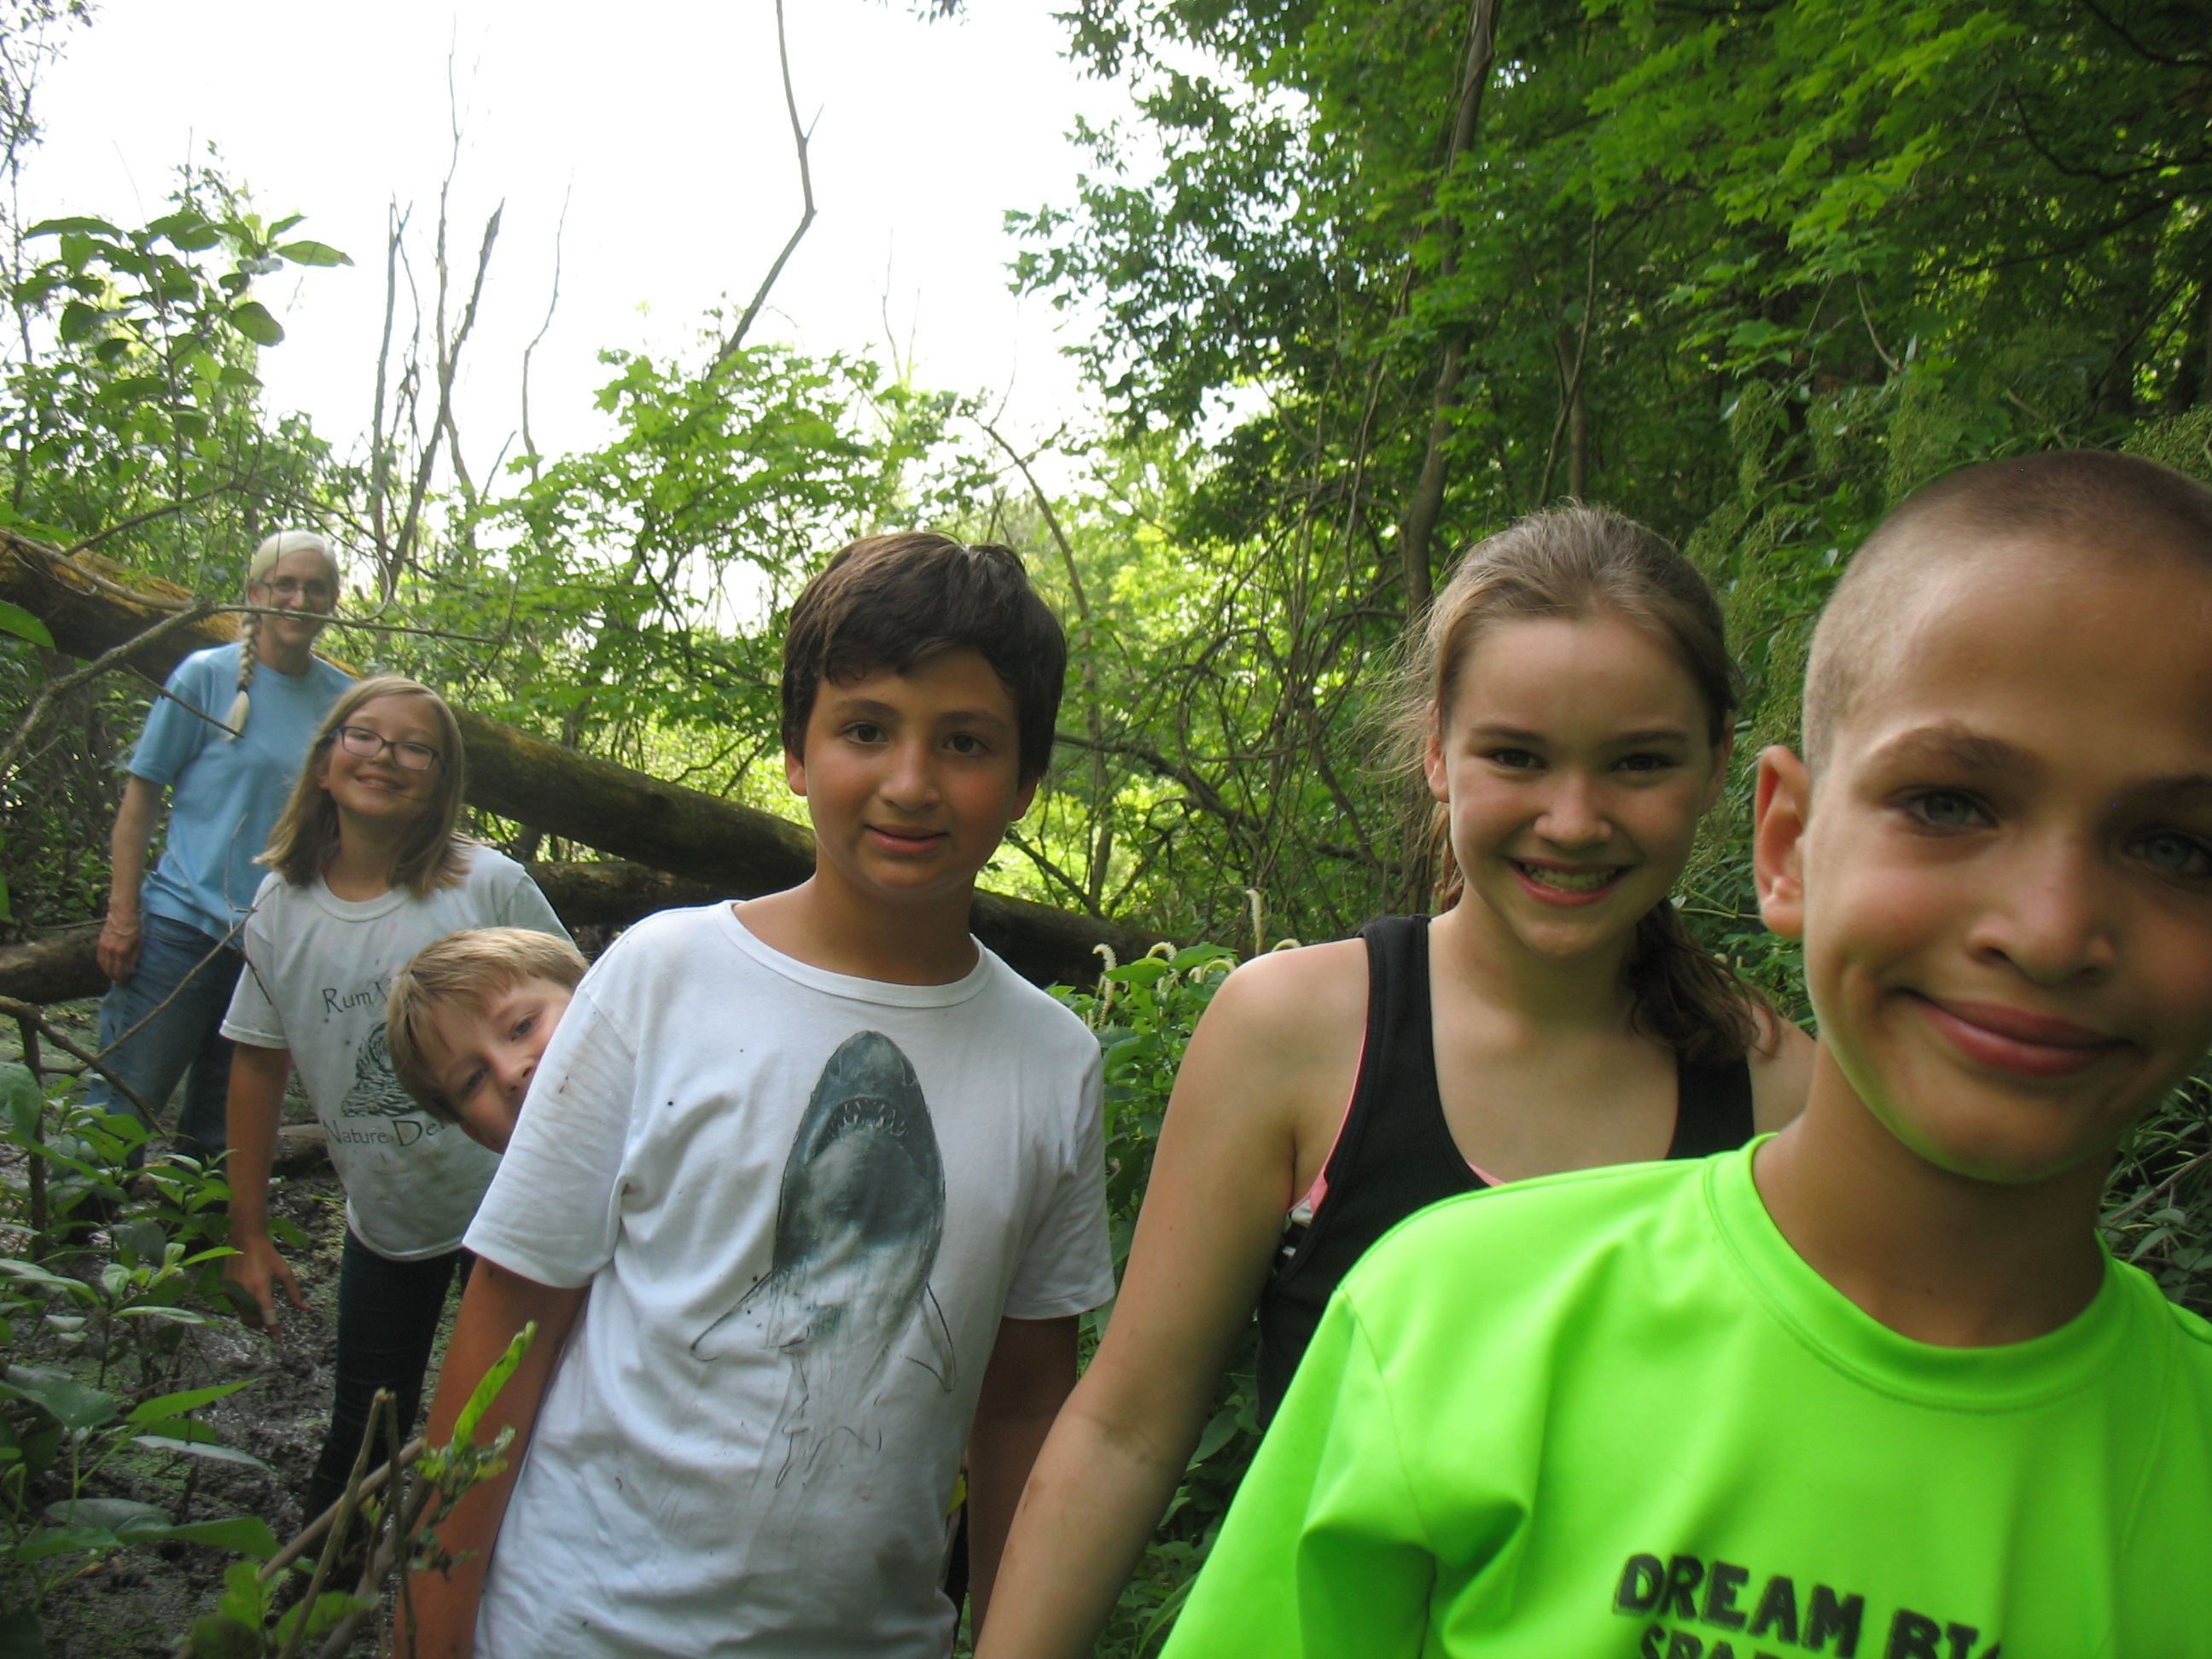 kids explore a swamp during Outdoor Adventures Day Camp